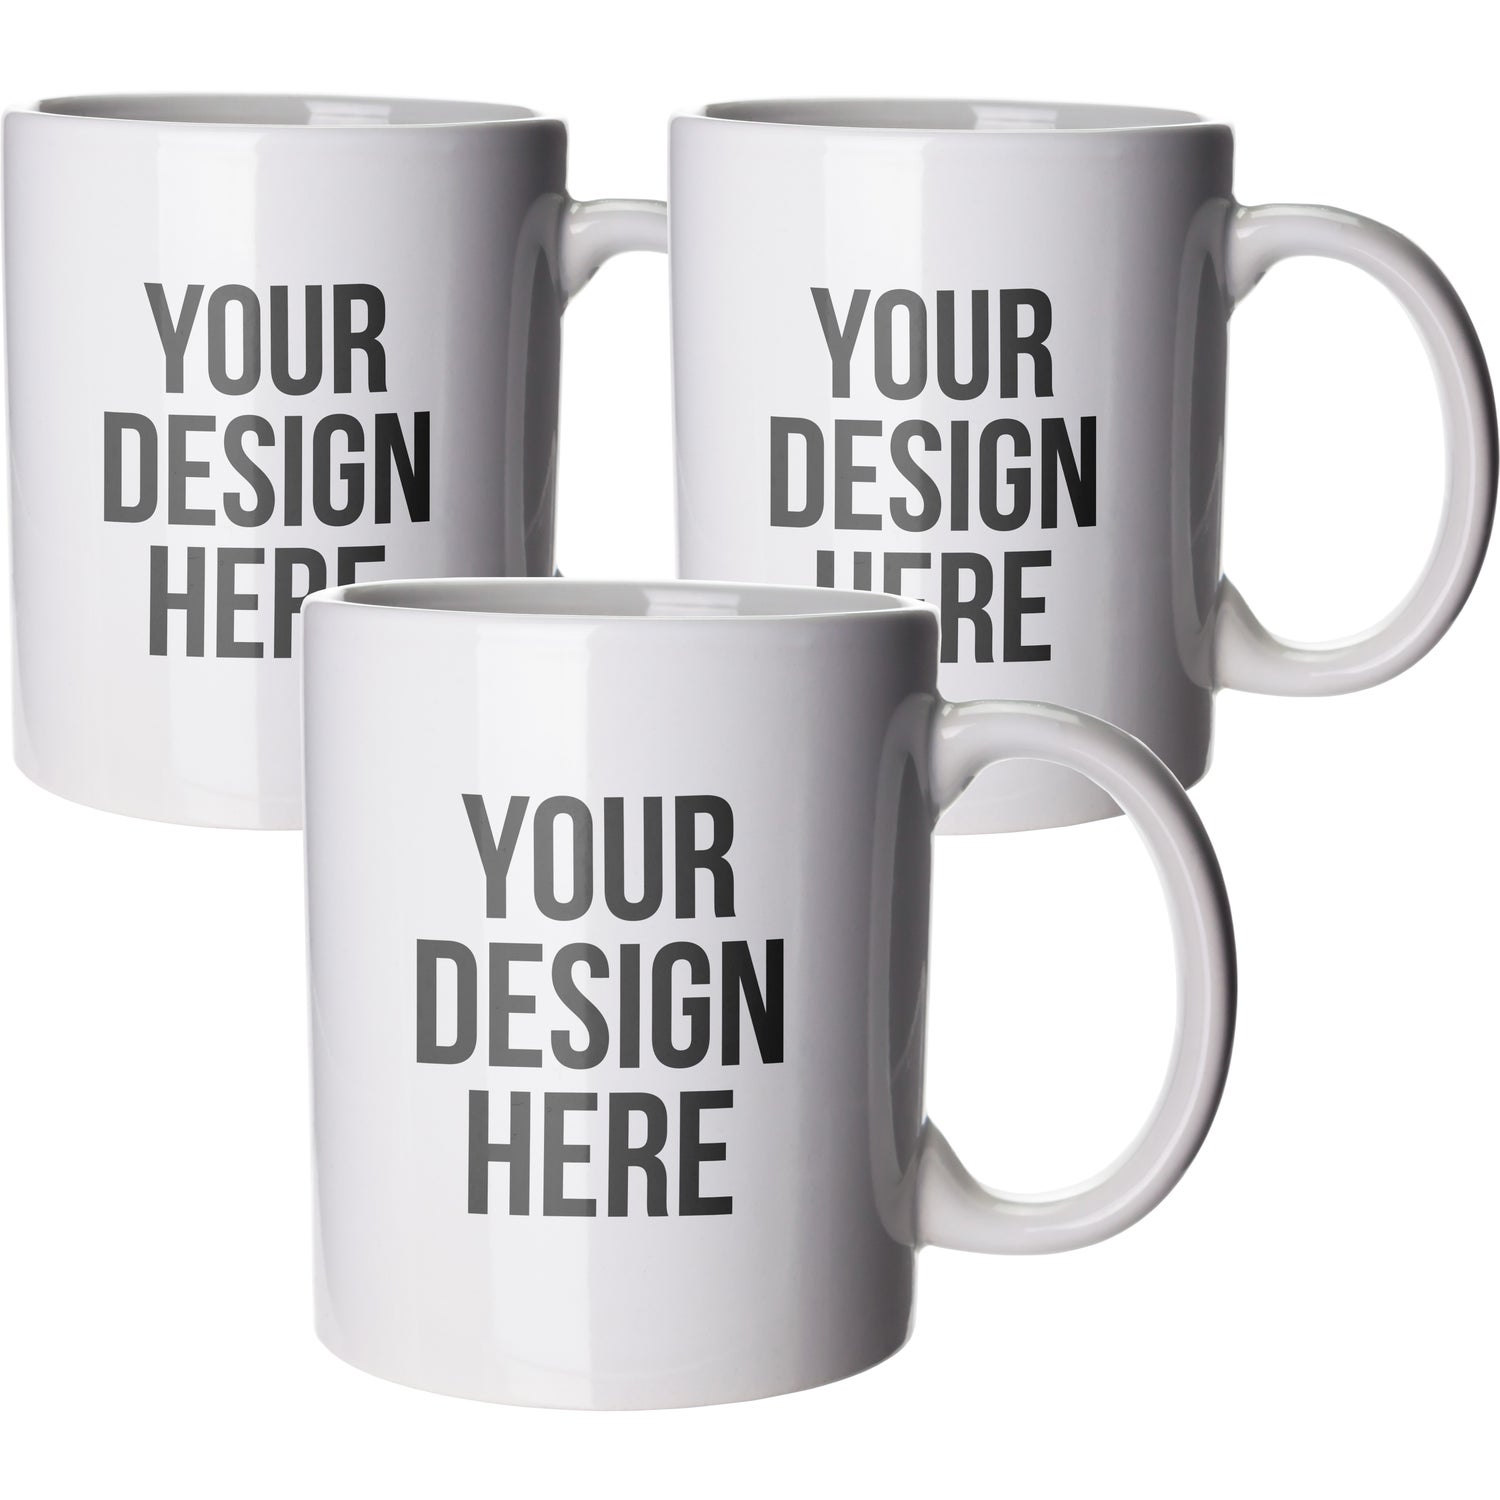 Click Here To Order 11 Oz Budget Coffee Mugs Printed With Your Logo